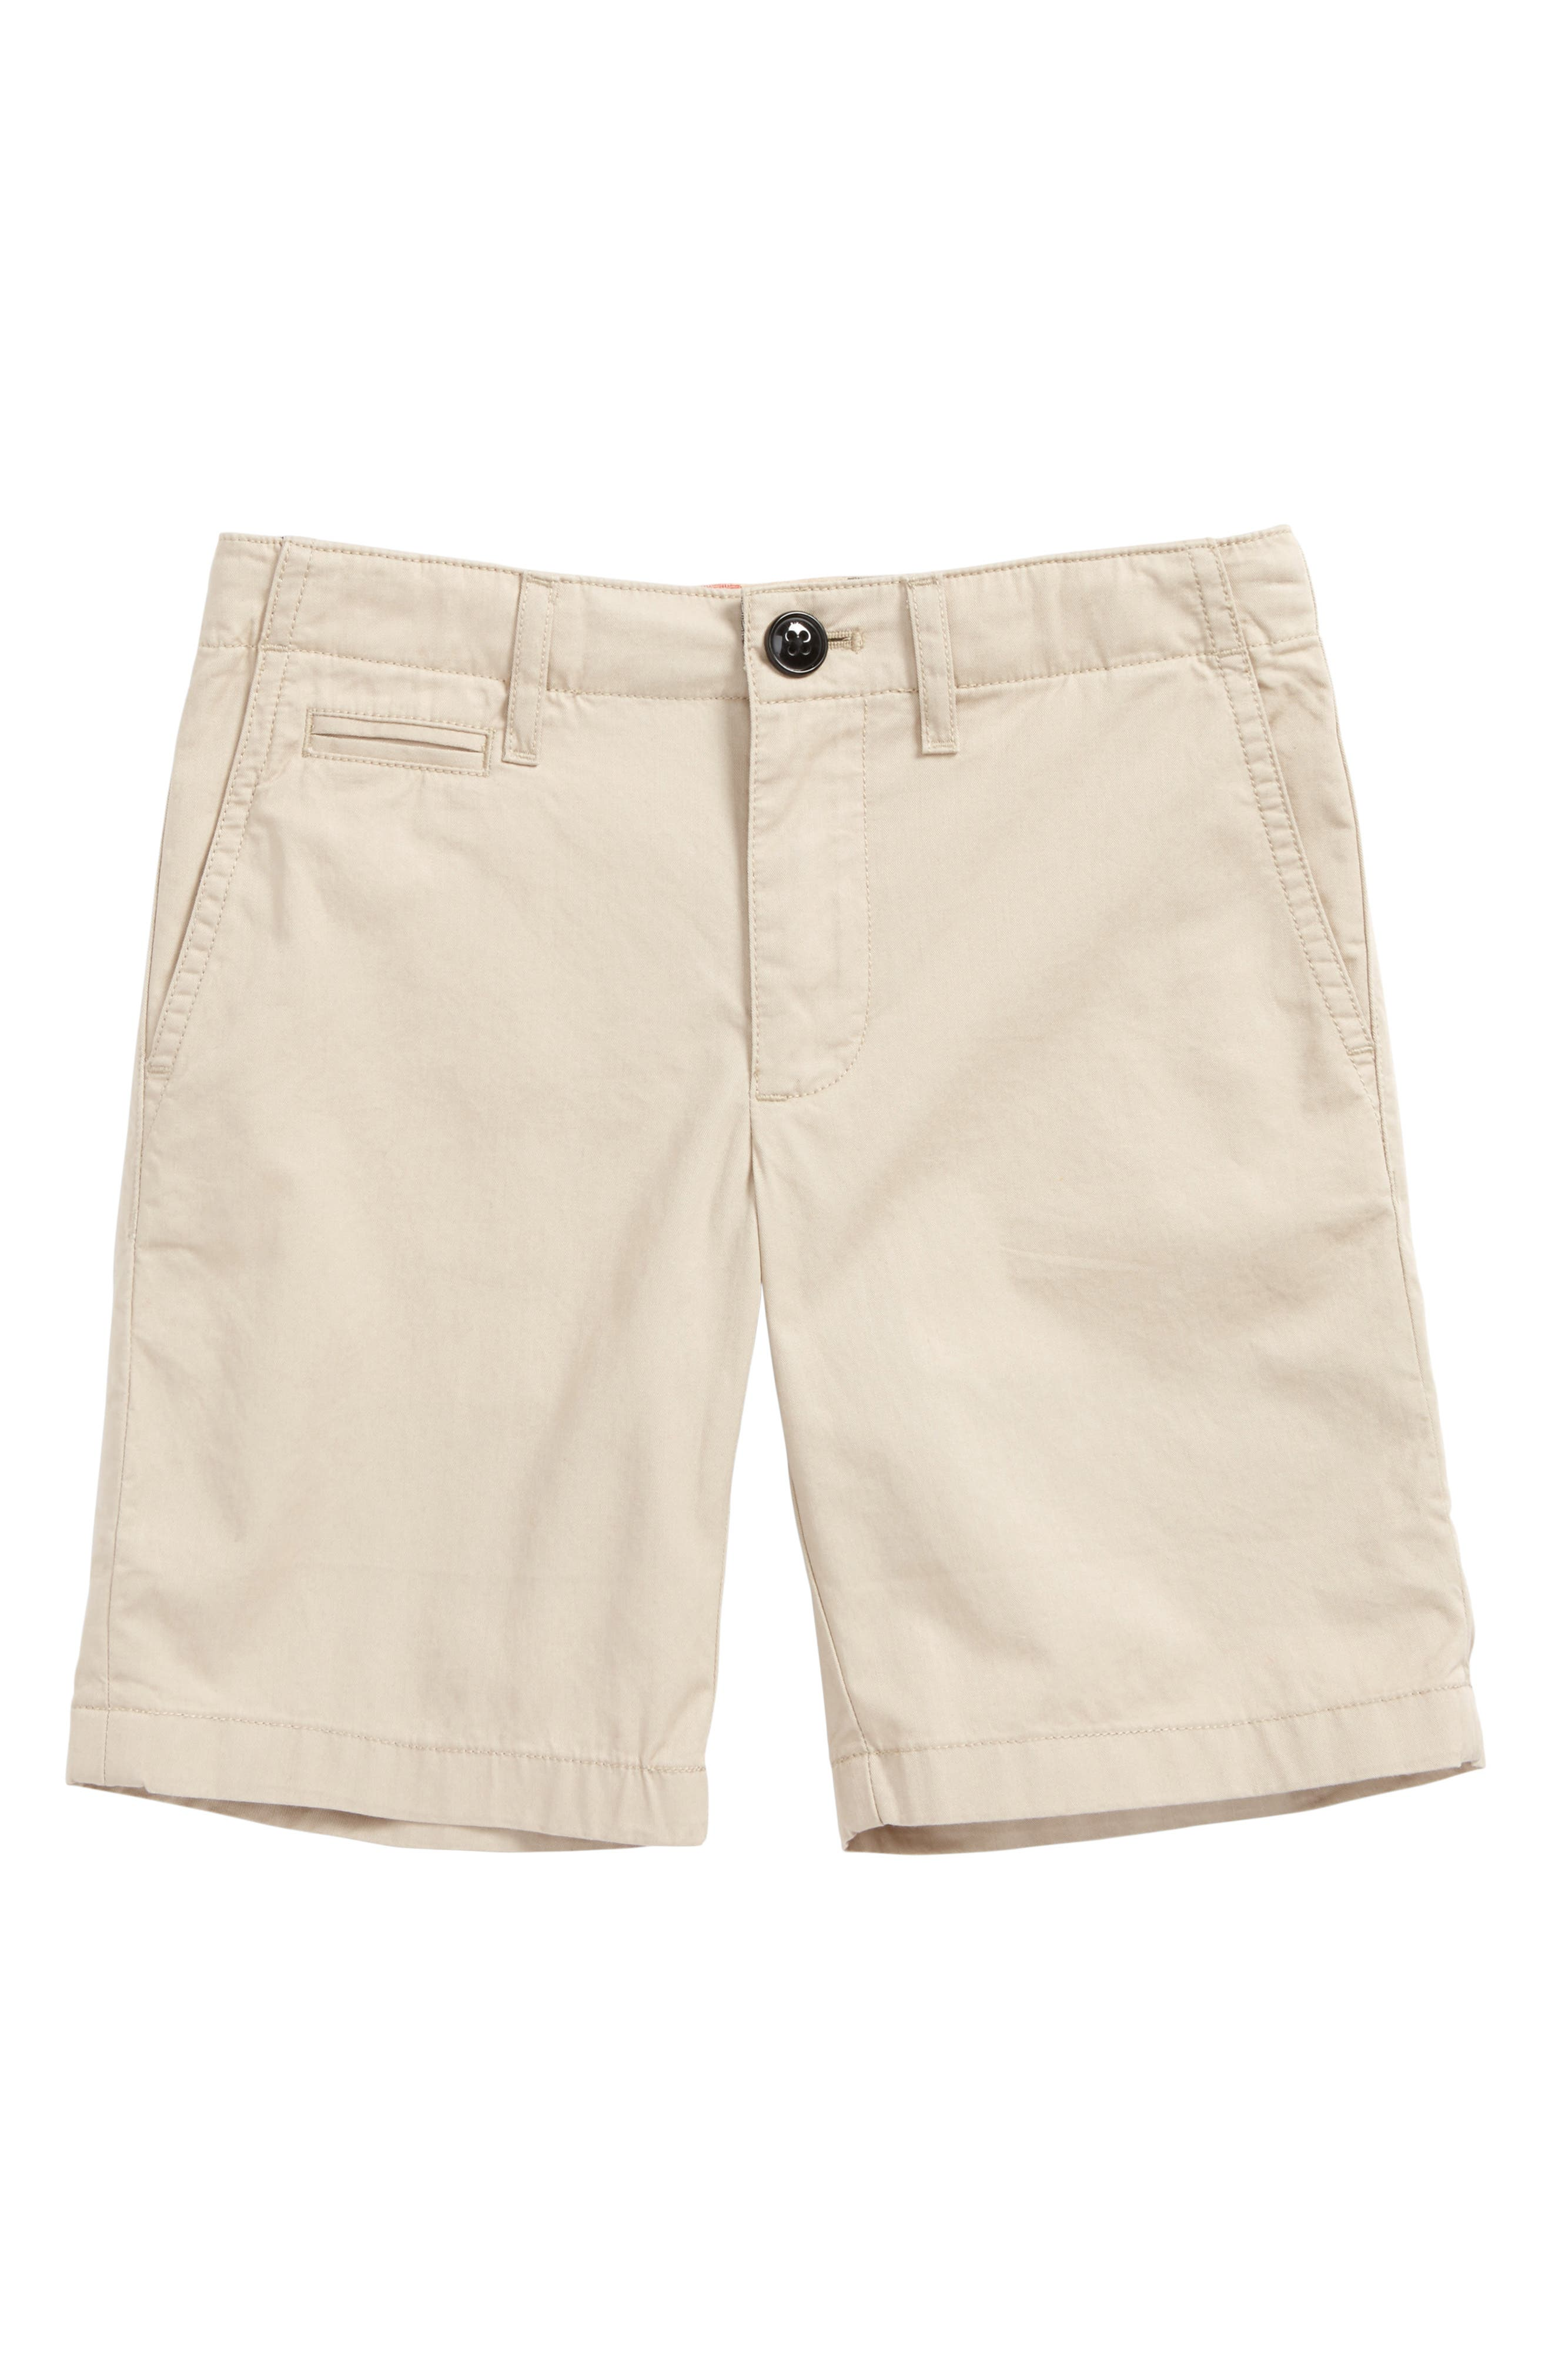 Tristen Shorts,                         Main,                         color, Grey Stone